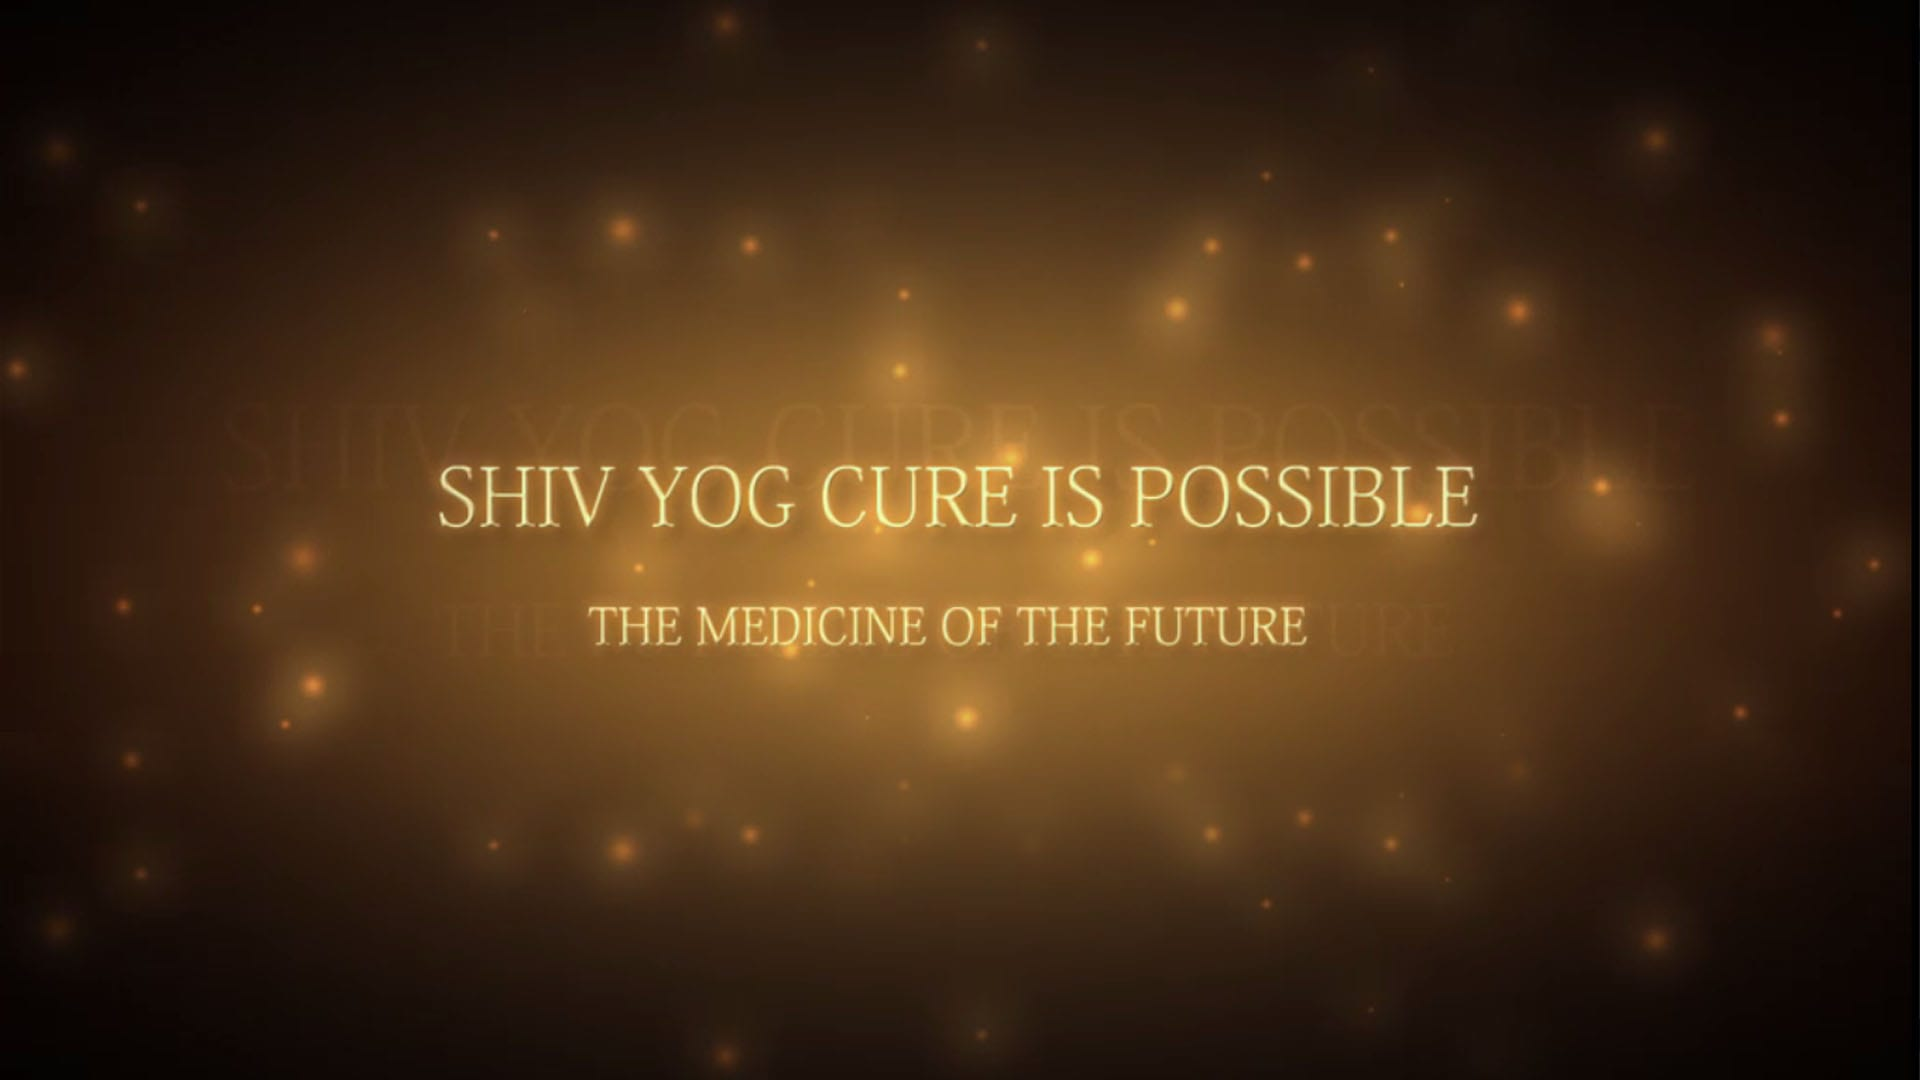 Shiv Yog Cure Is Possible Mobile Slider